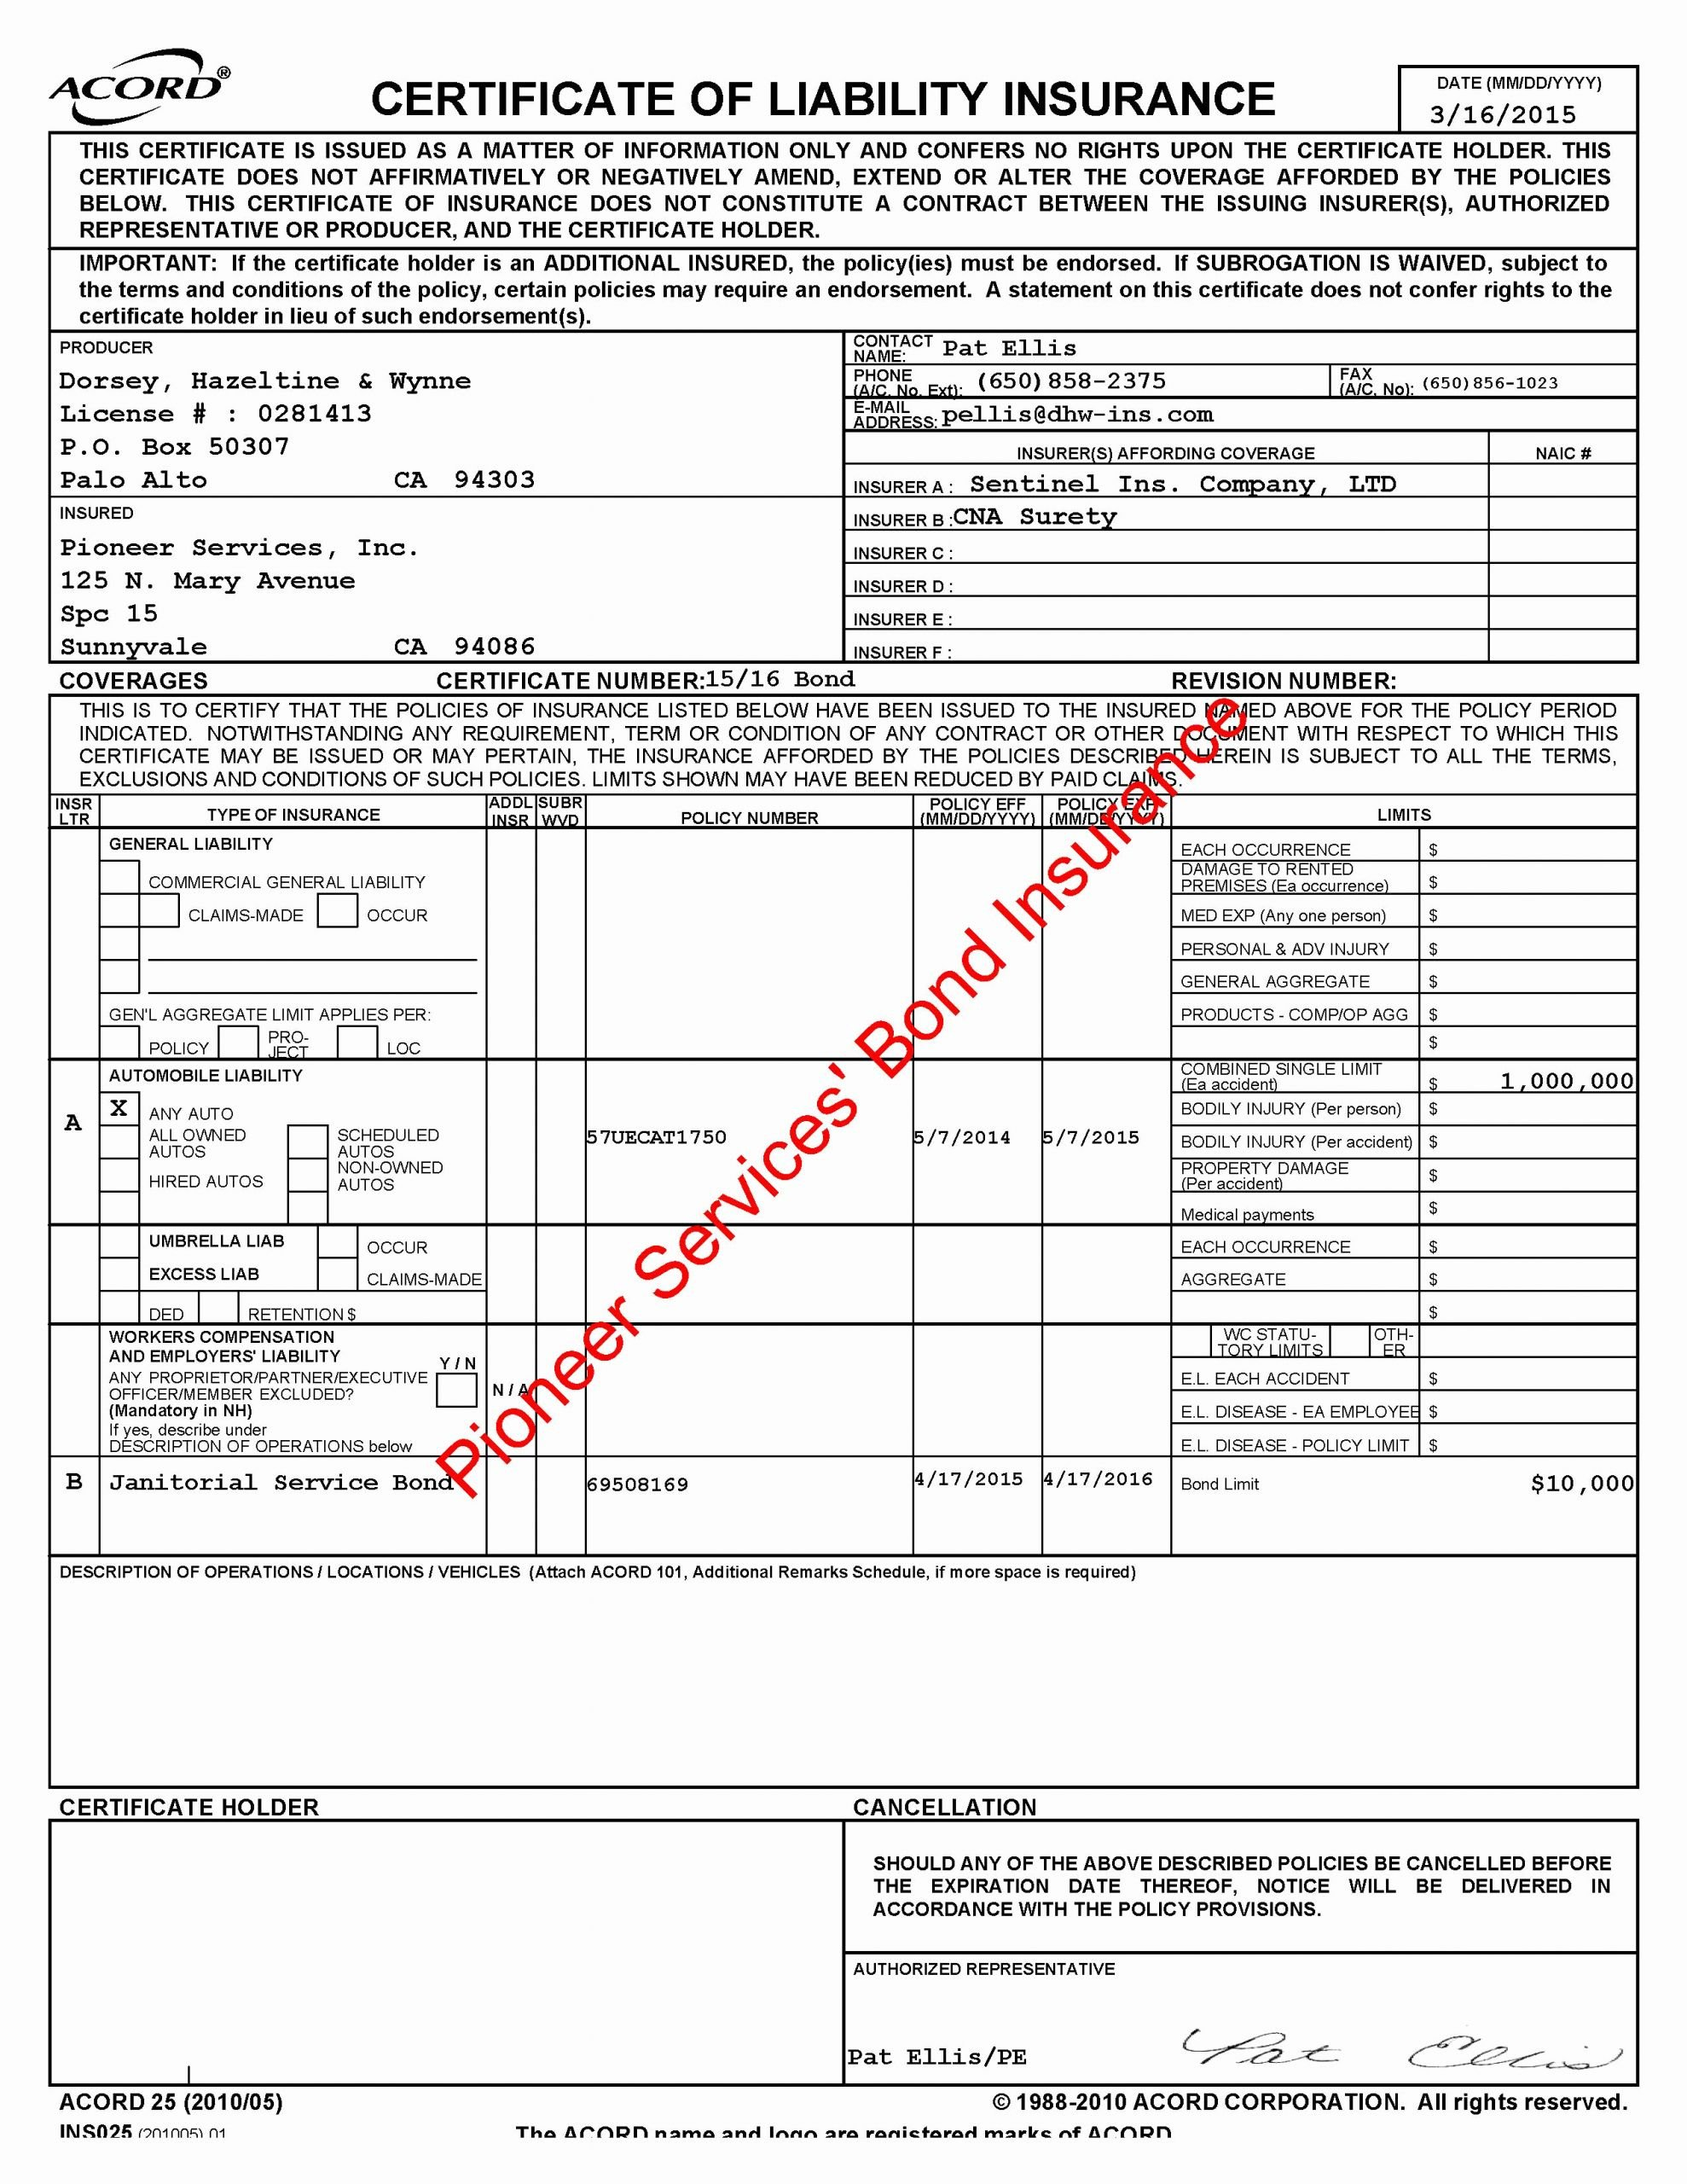 Corporate Bond Certificate Template Best Of Accord form 25 Acord form 6 Acord forms Free Premium